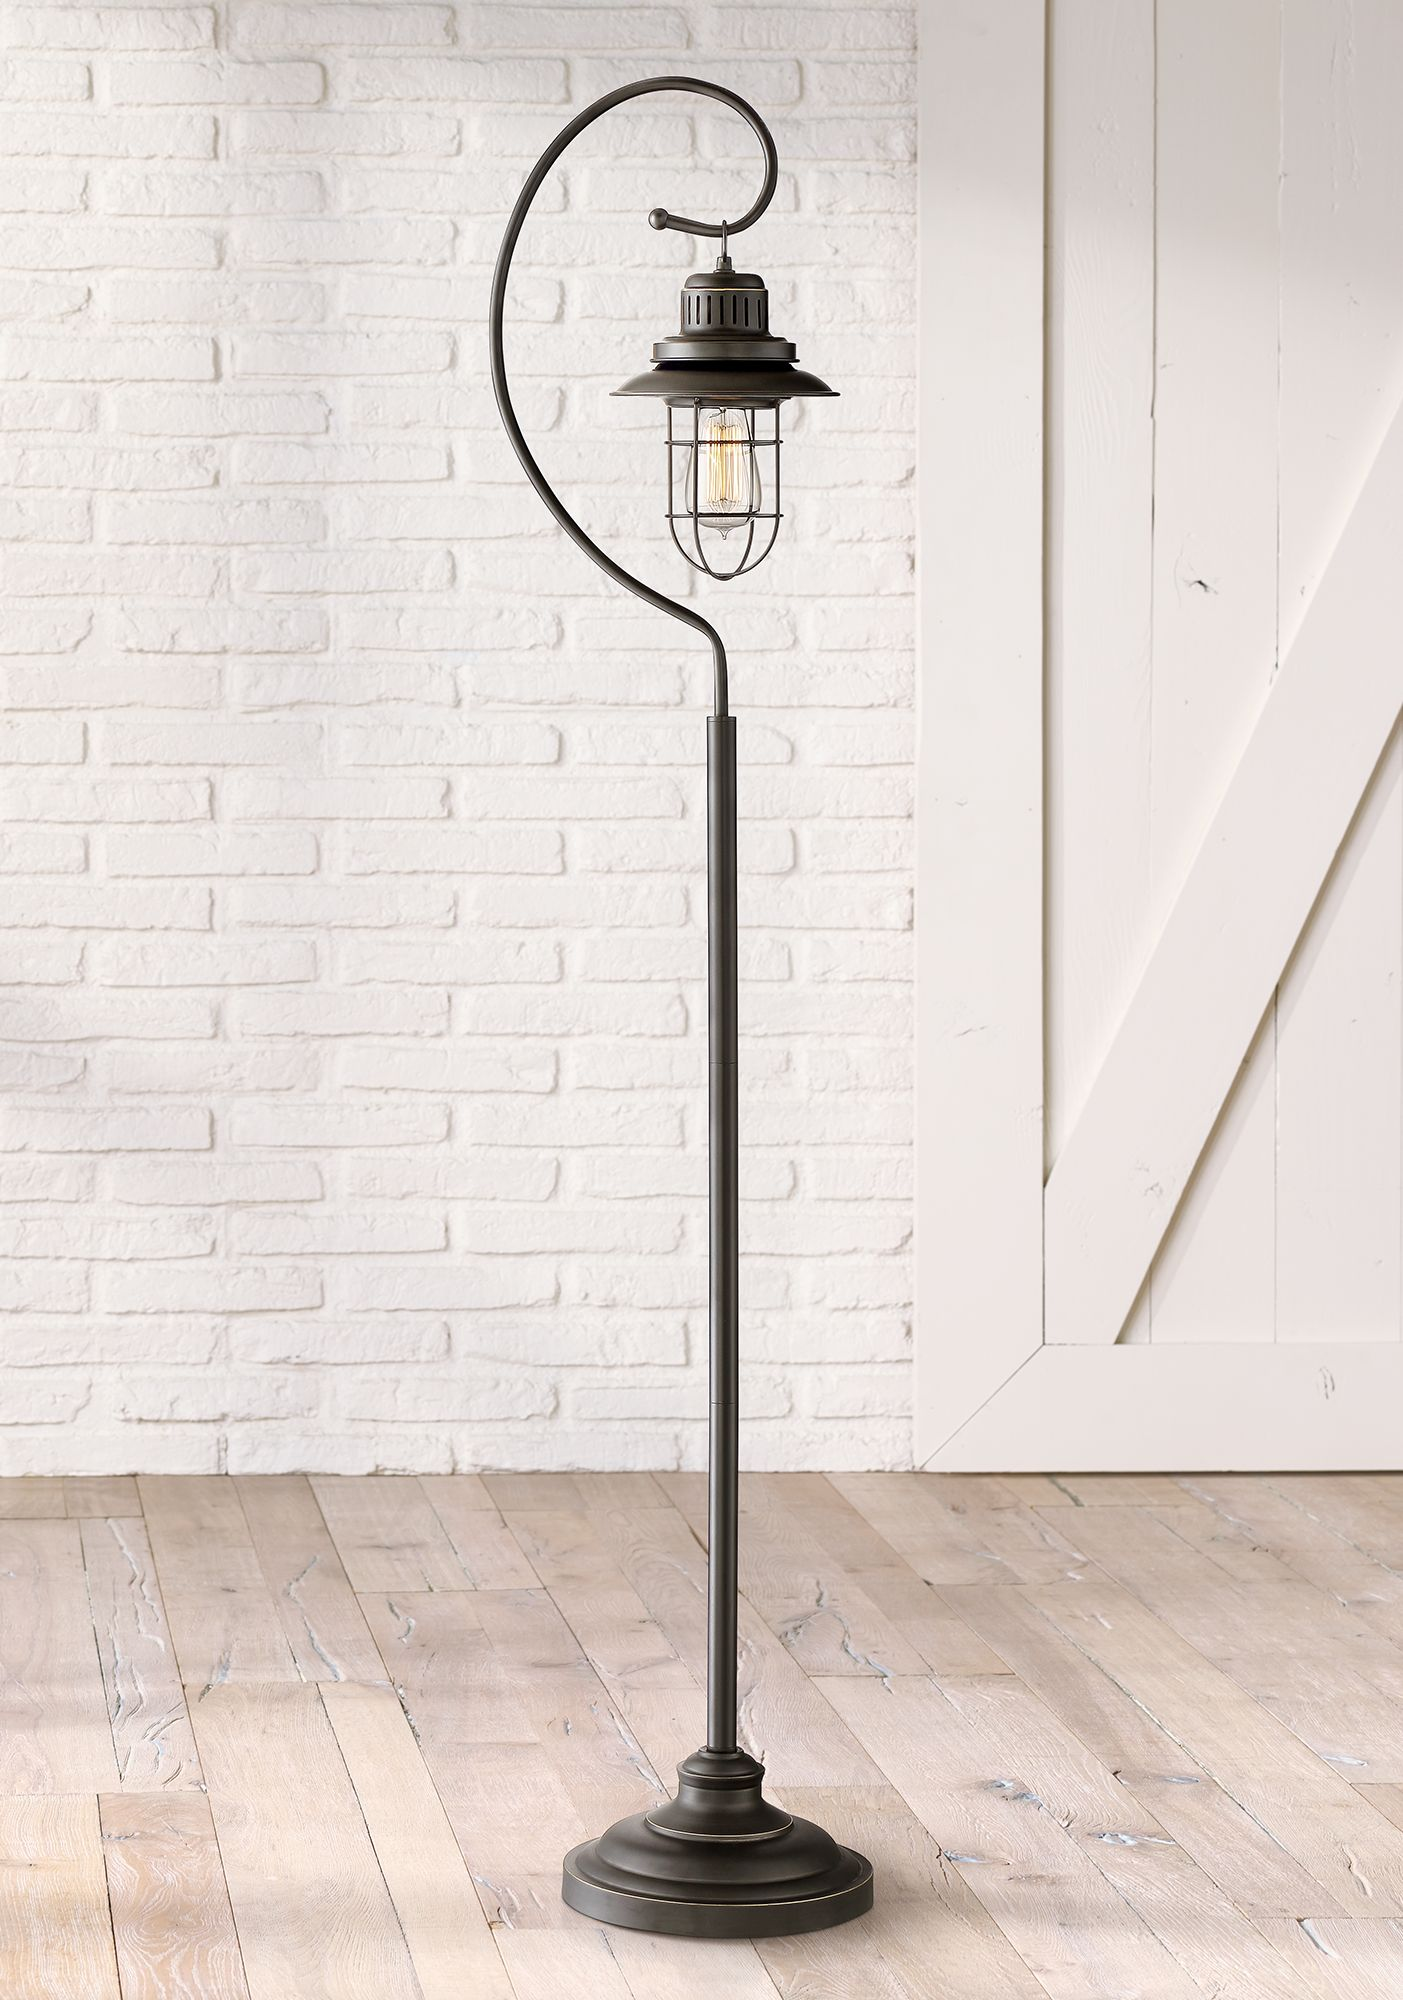 Awesome Ulysses Oil Rubbed Bronze Industrial Lantern Floor Lamp